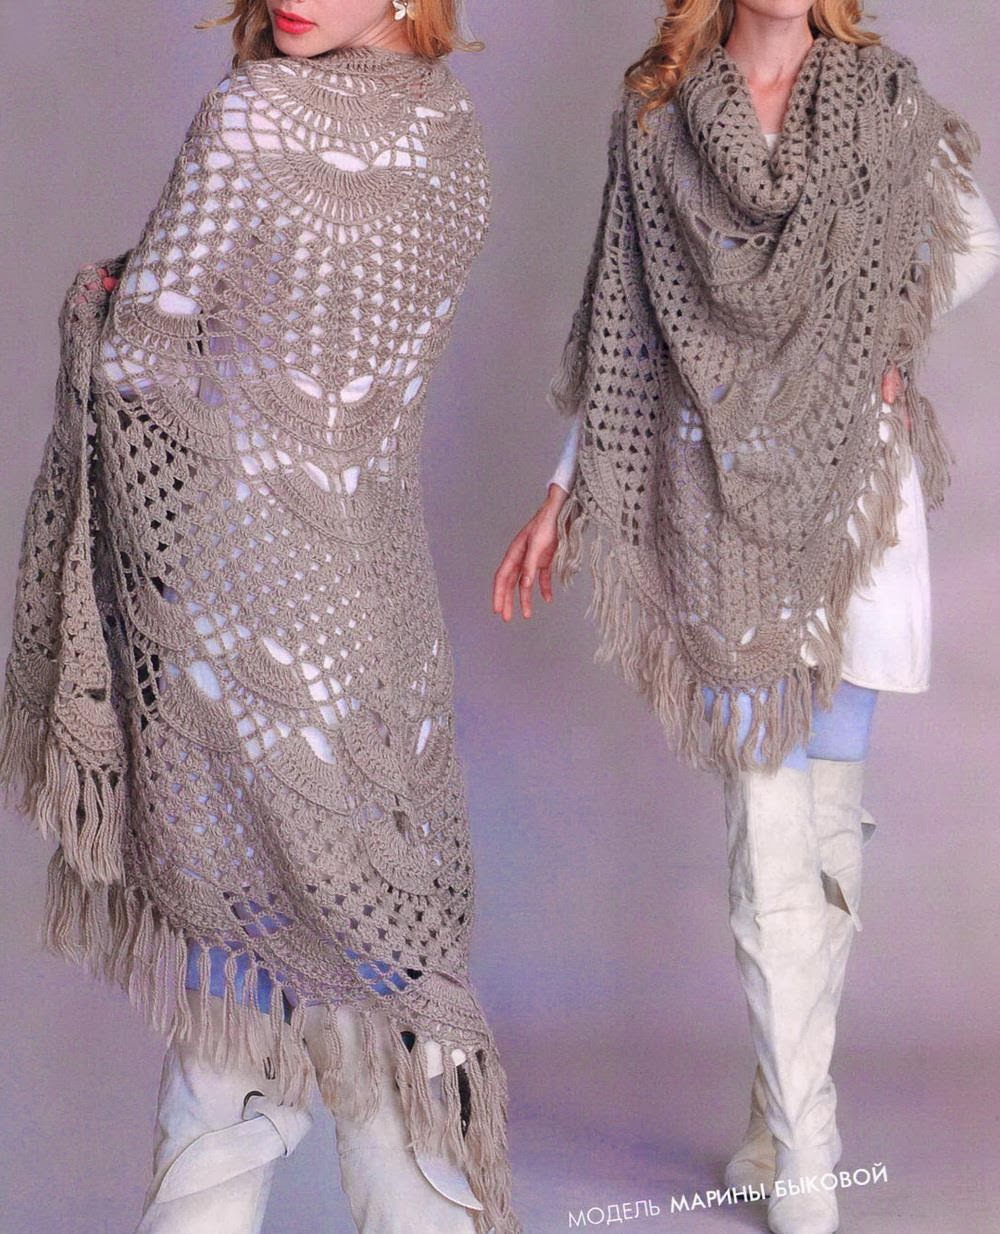 Crochet Shawls: Crochet Shawl Pattern - Wonderful Shawl ...